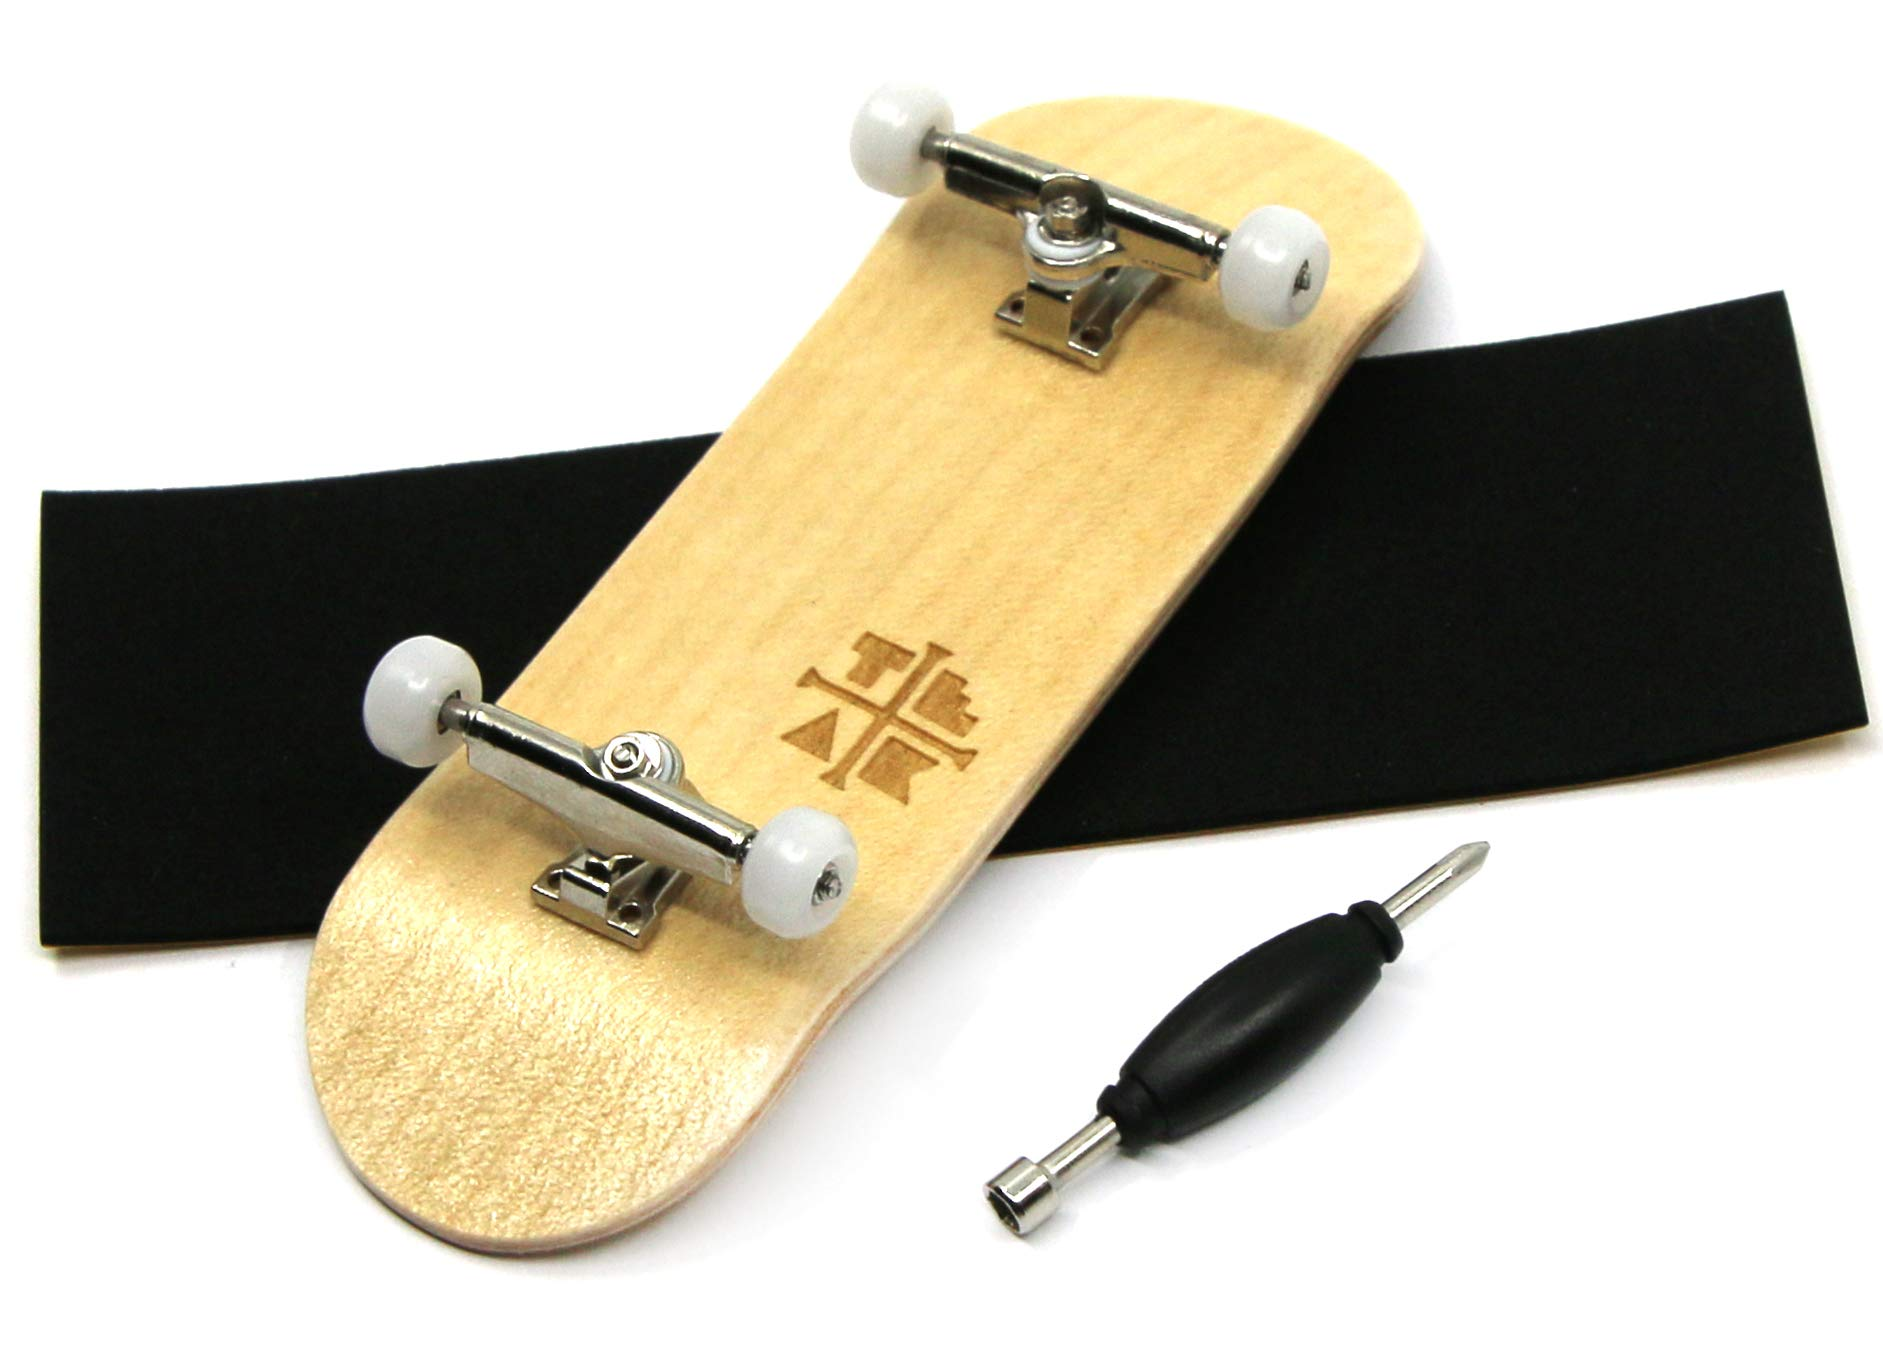 Teak Tuning Prolific Complete Fingerboard with